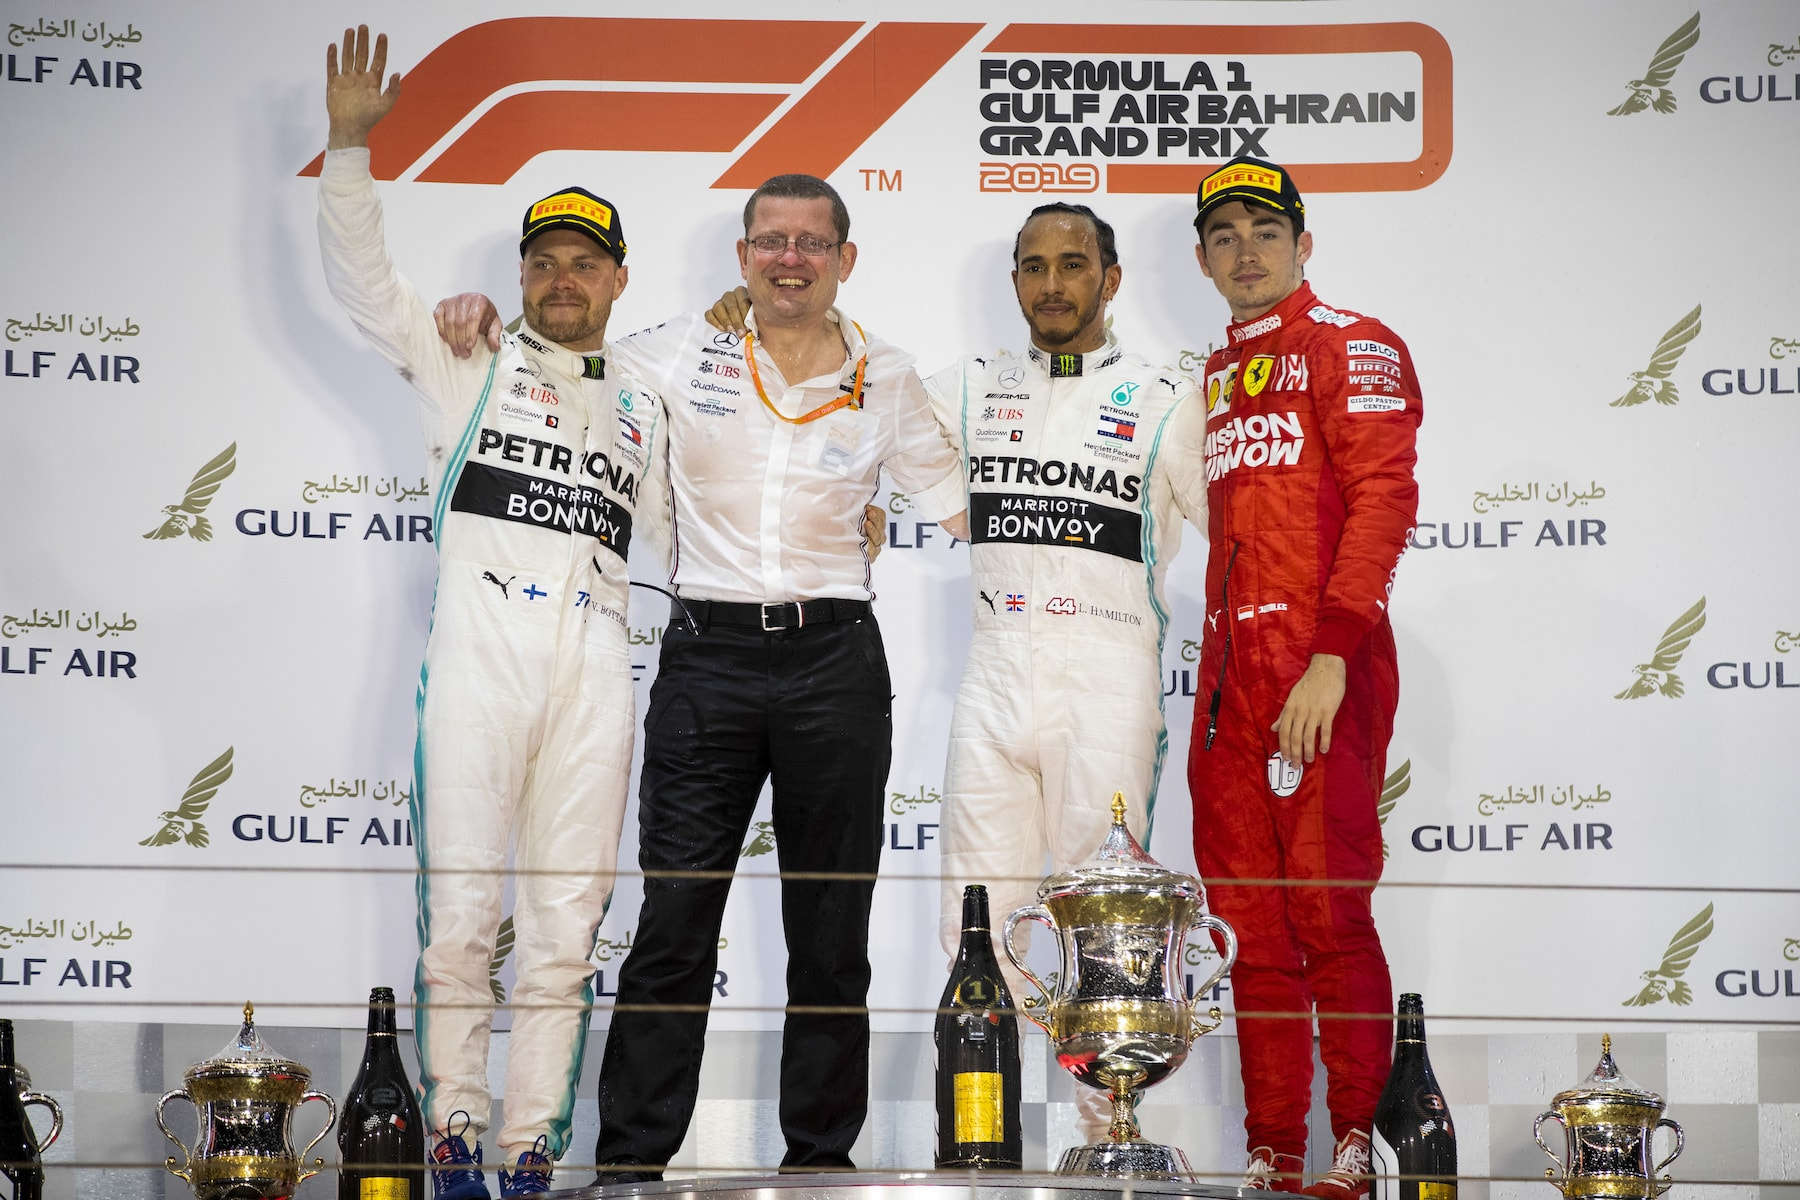 X 3 1 3 2019 Bahrain GP Podium 2 copy.jpg